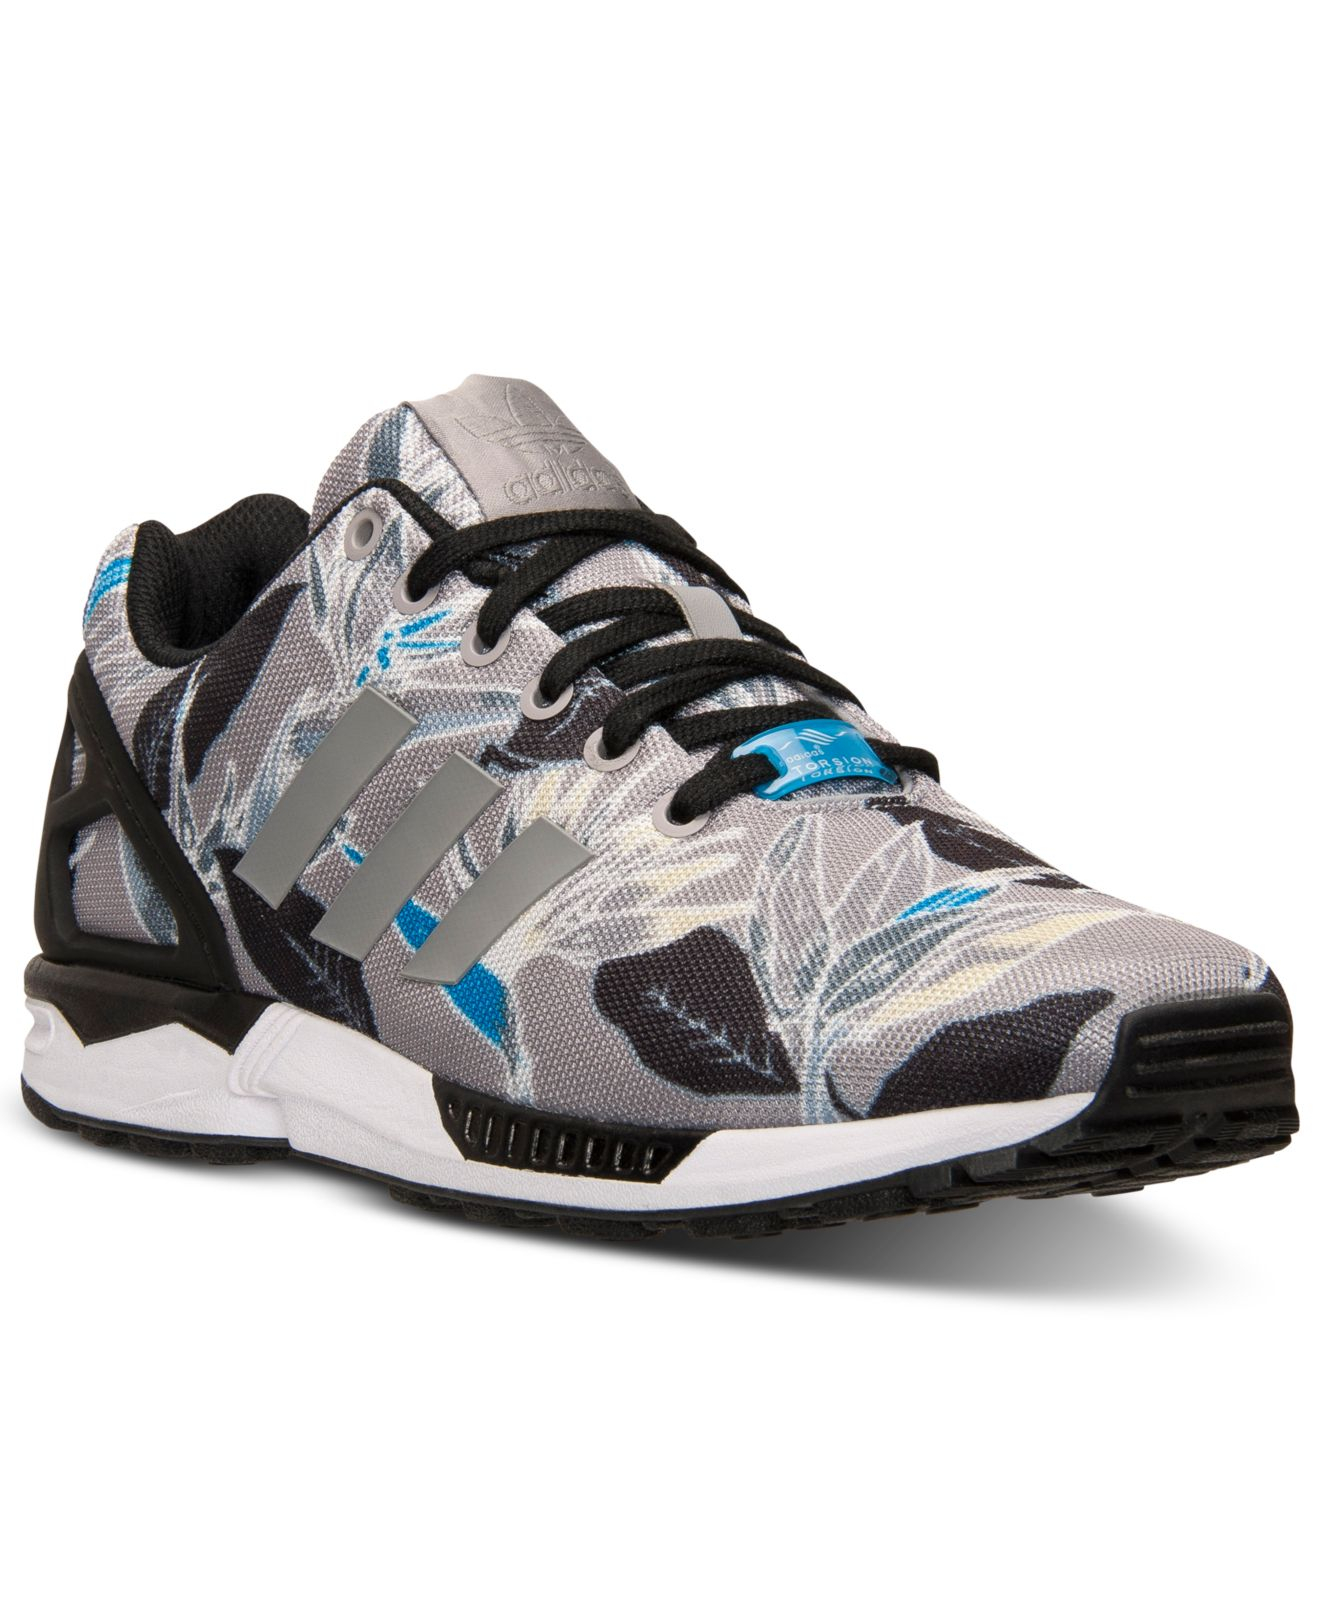 on sale e1626 a3178 adidas Men s Zx Flux Floral Print Casual Sneakers From Finish Line ...